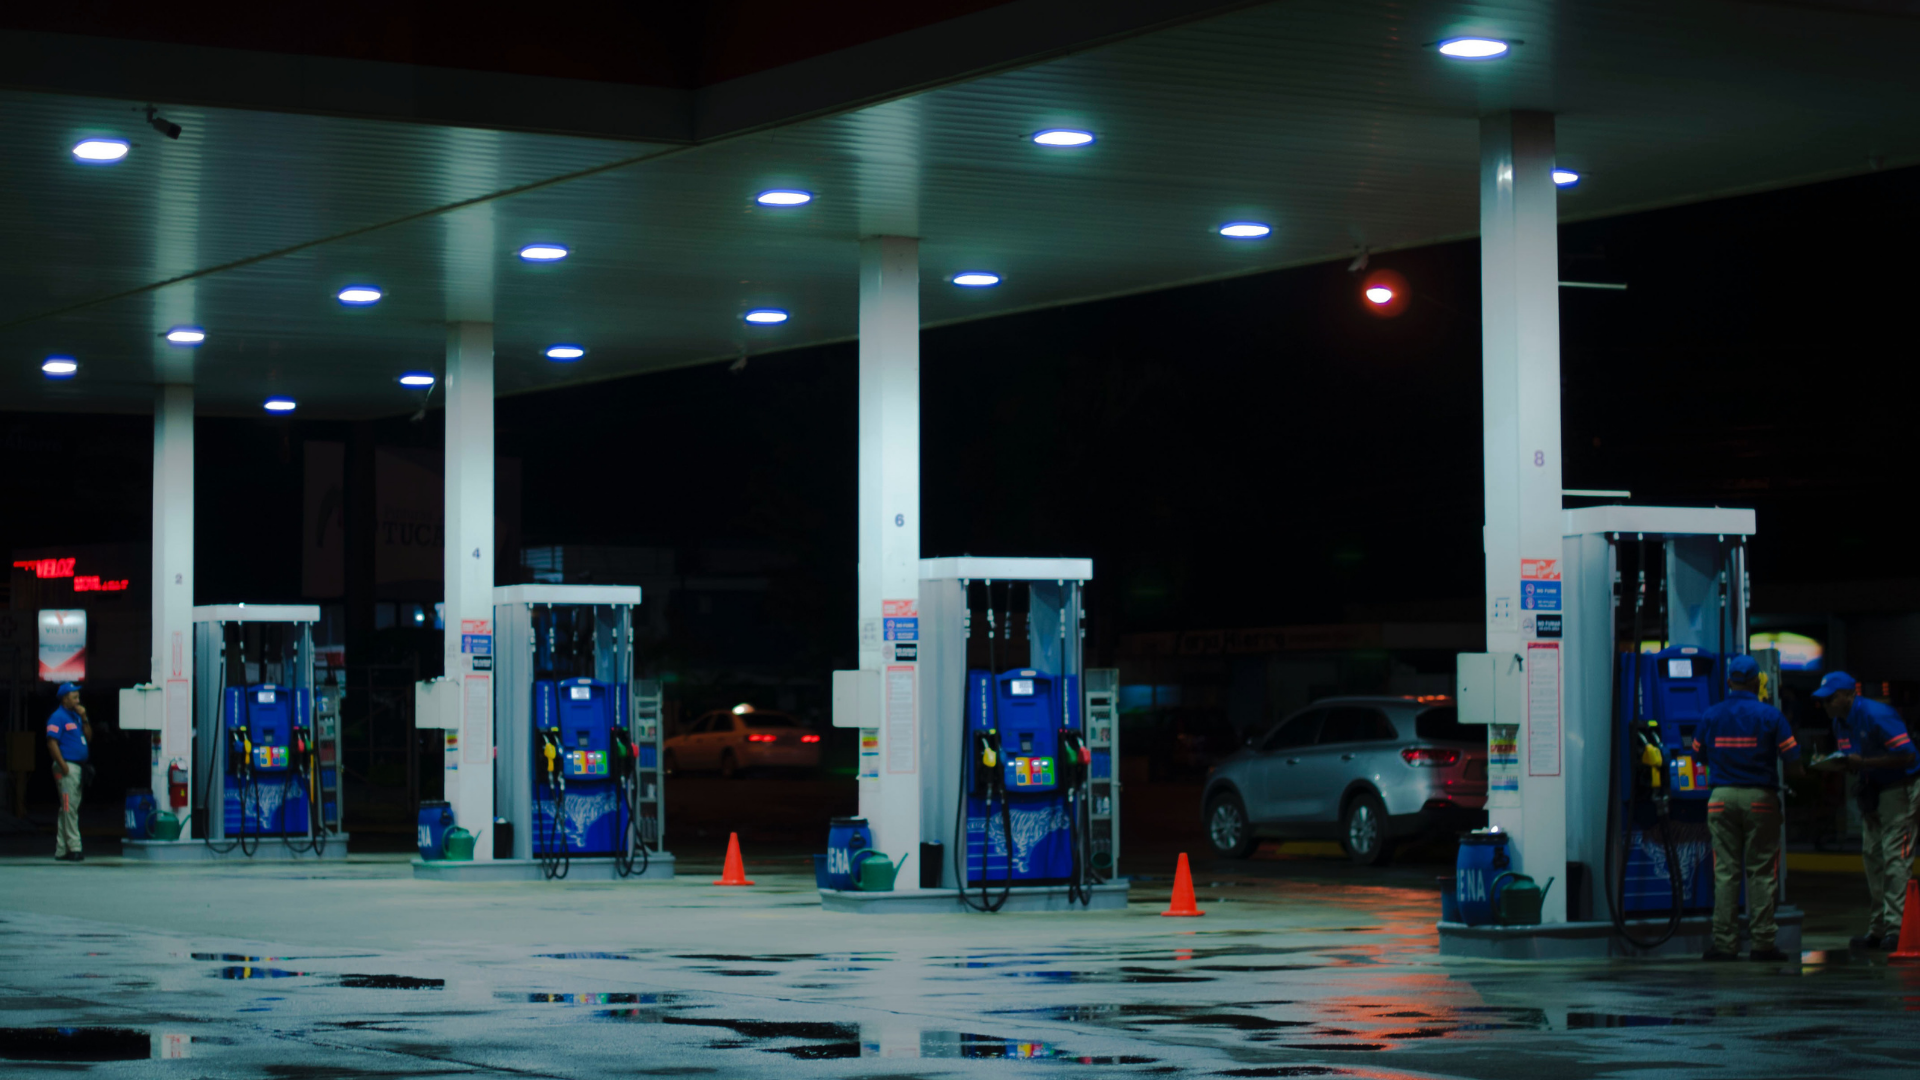 Gas station at nights showing different pumps